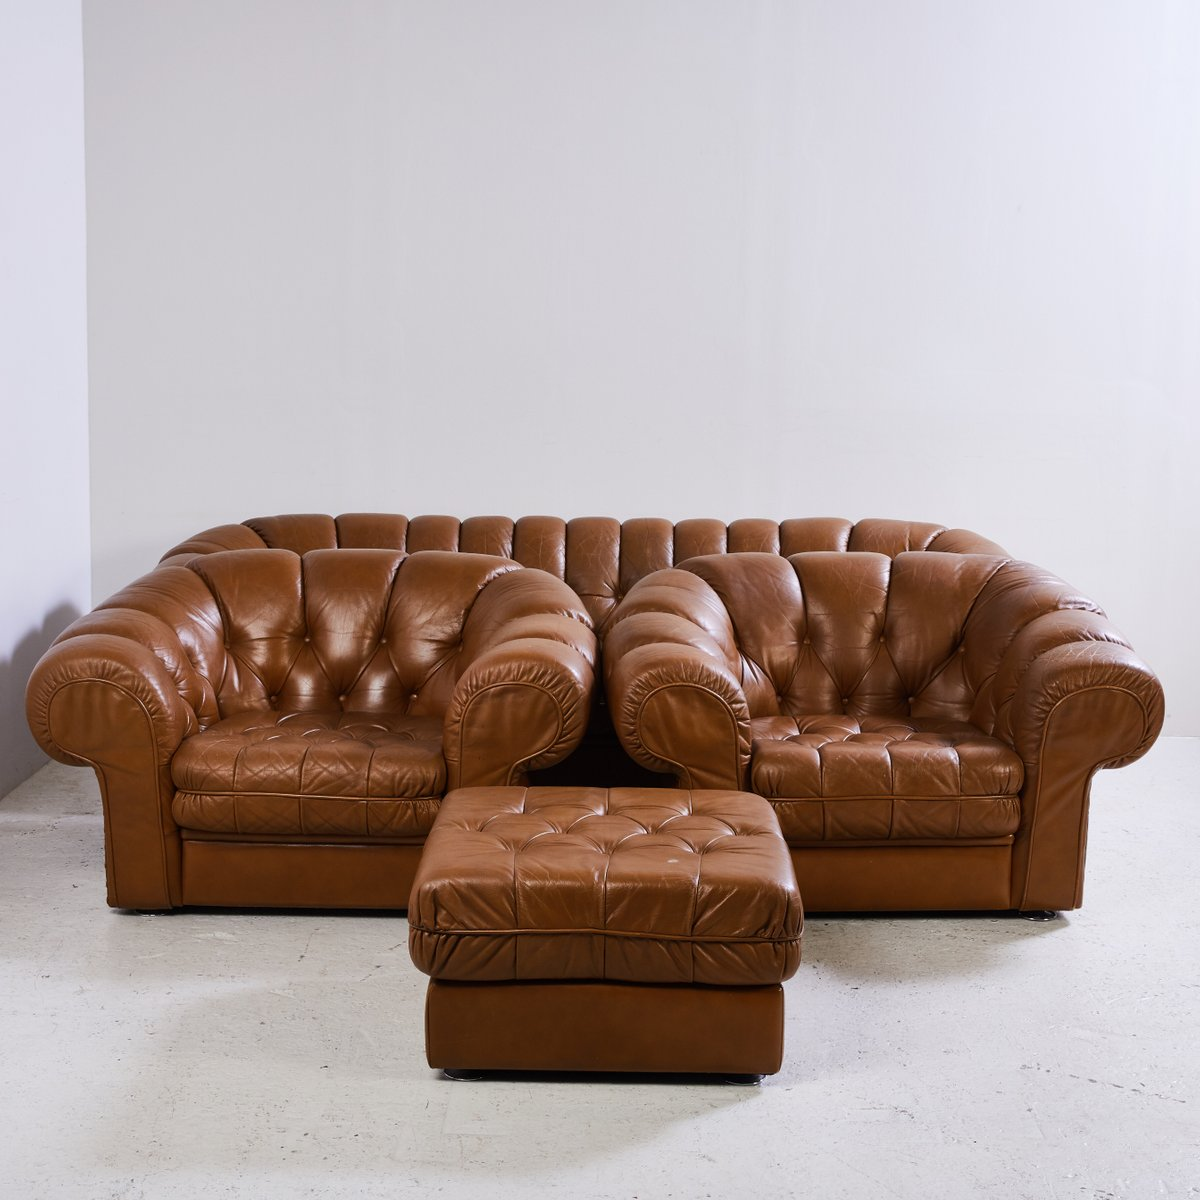 Sofa Set Price In Uae Chesterfield Leather Sofa Set 1970s For Sale At Pamono